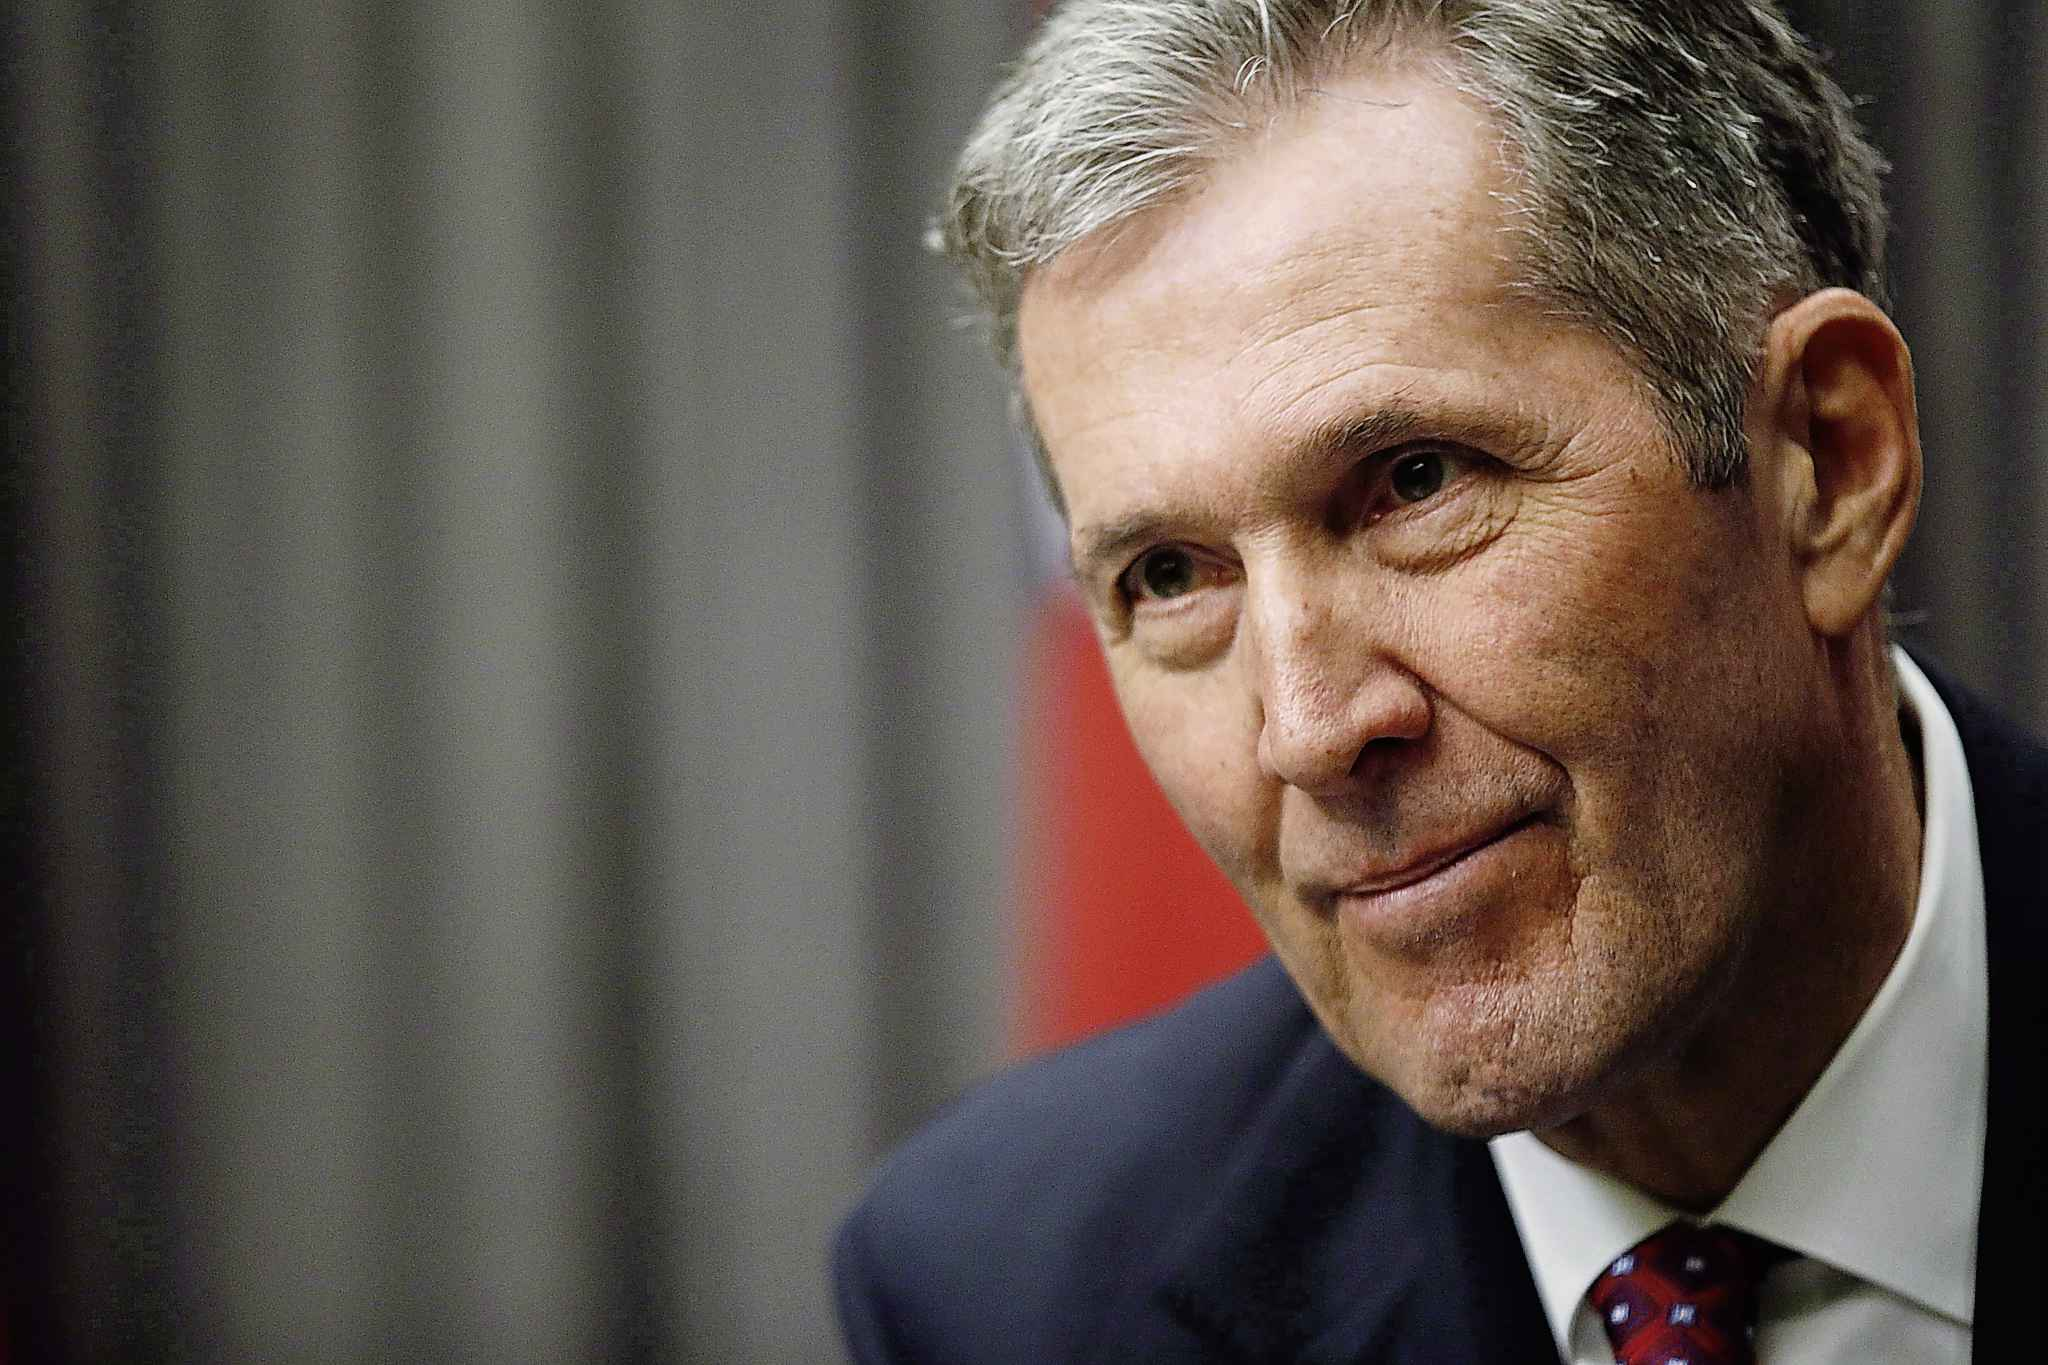 Premier Brian Pallister: The province will not be changing its budget process to accommodate the city's request.